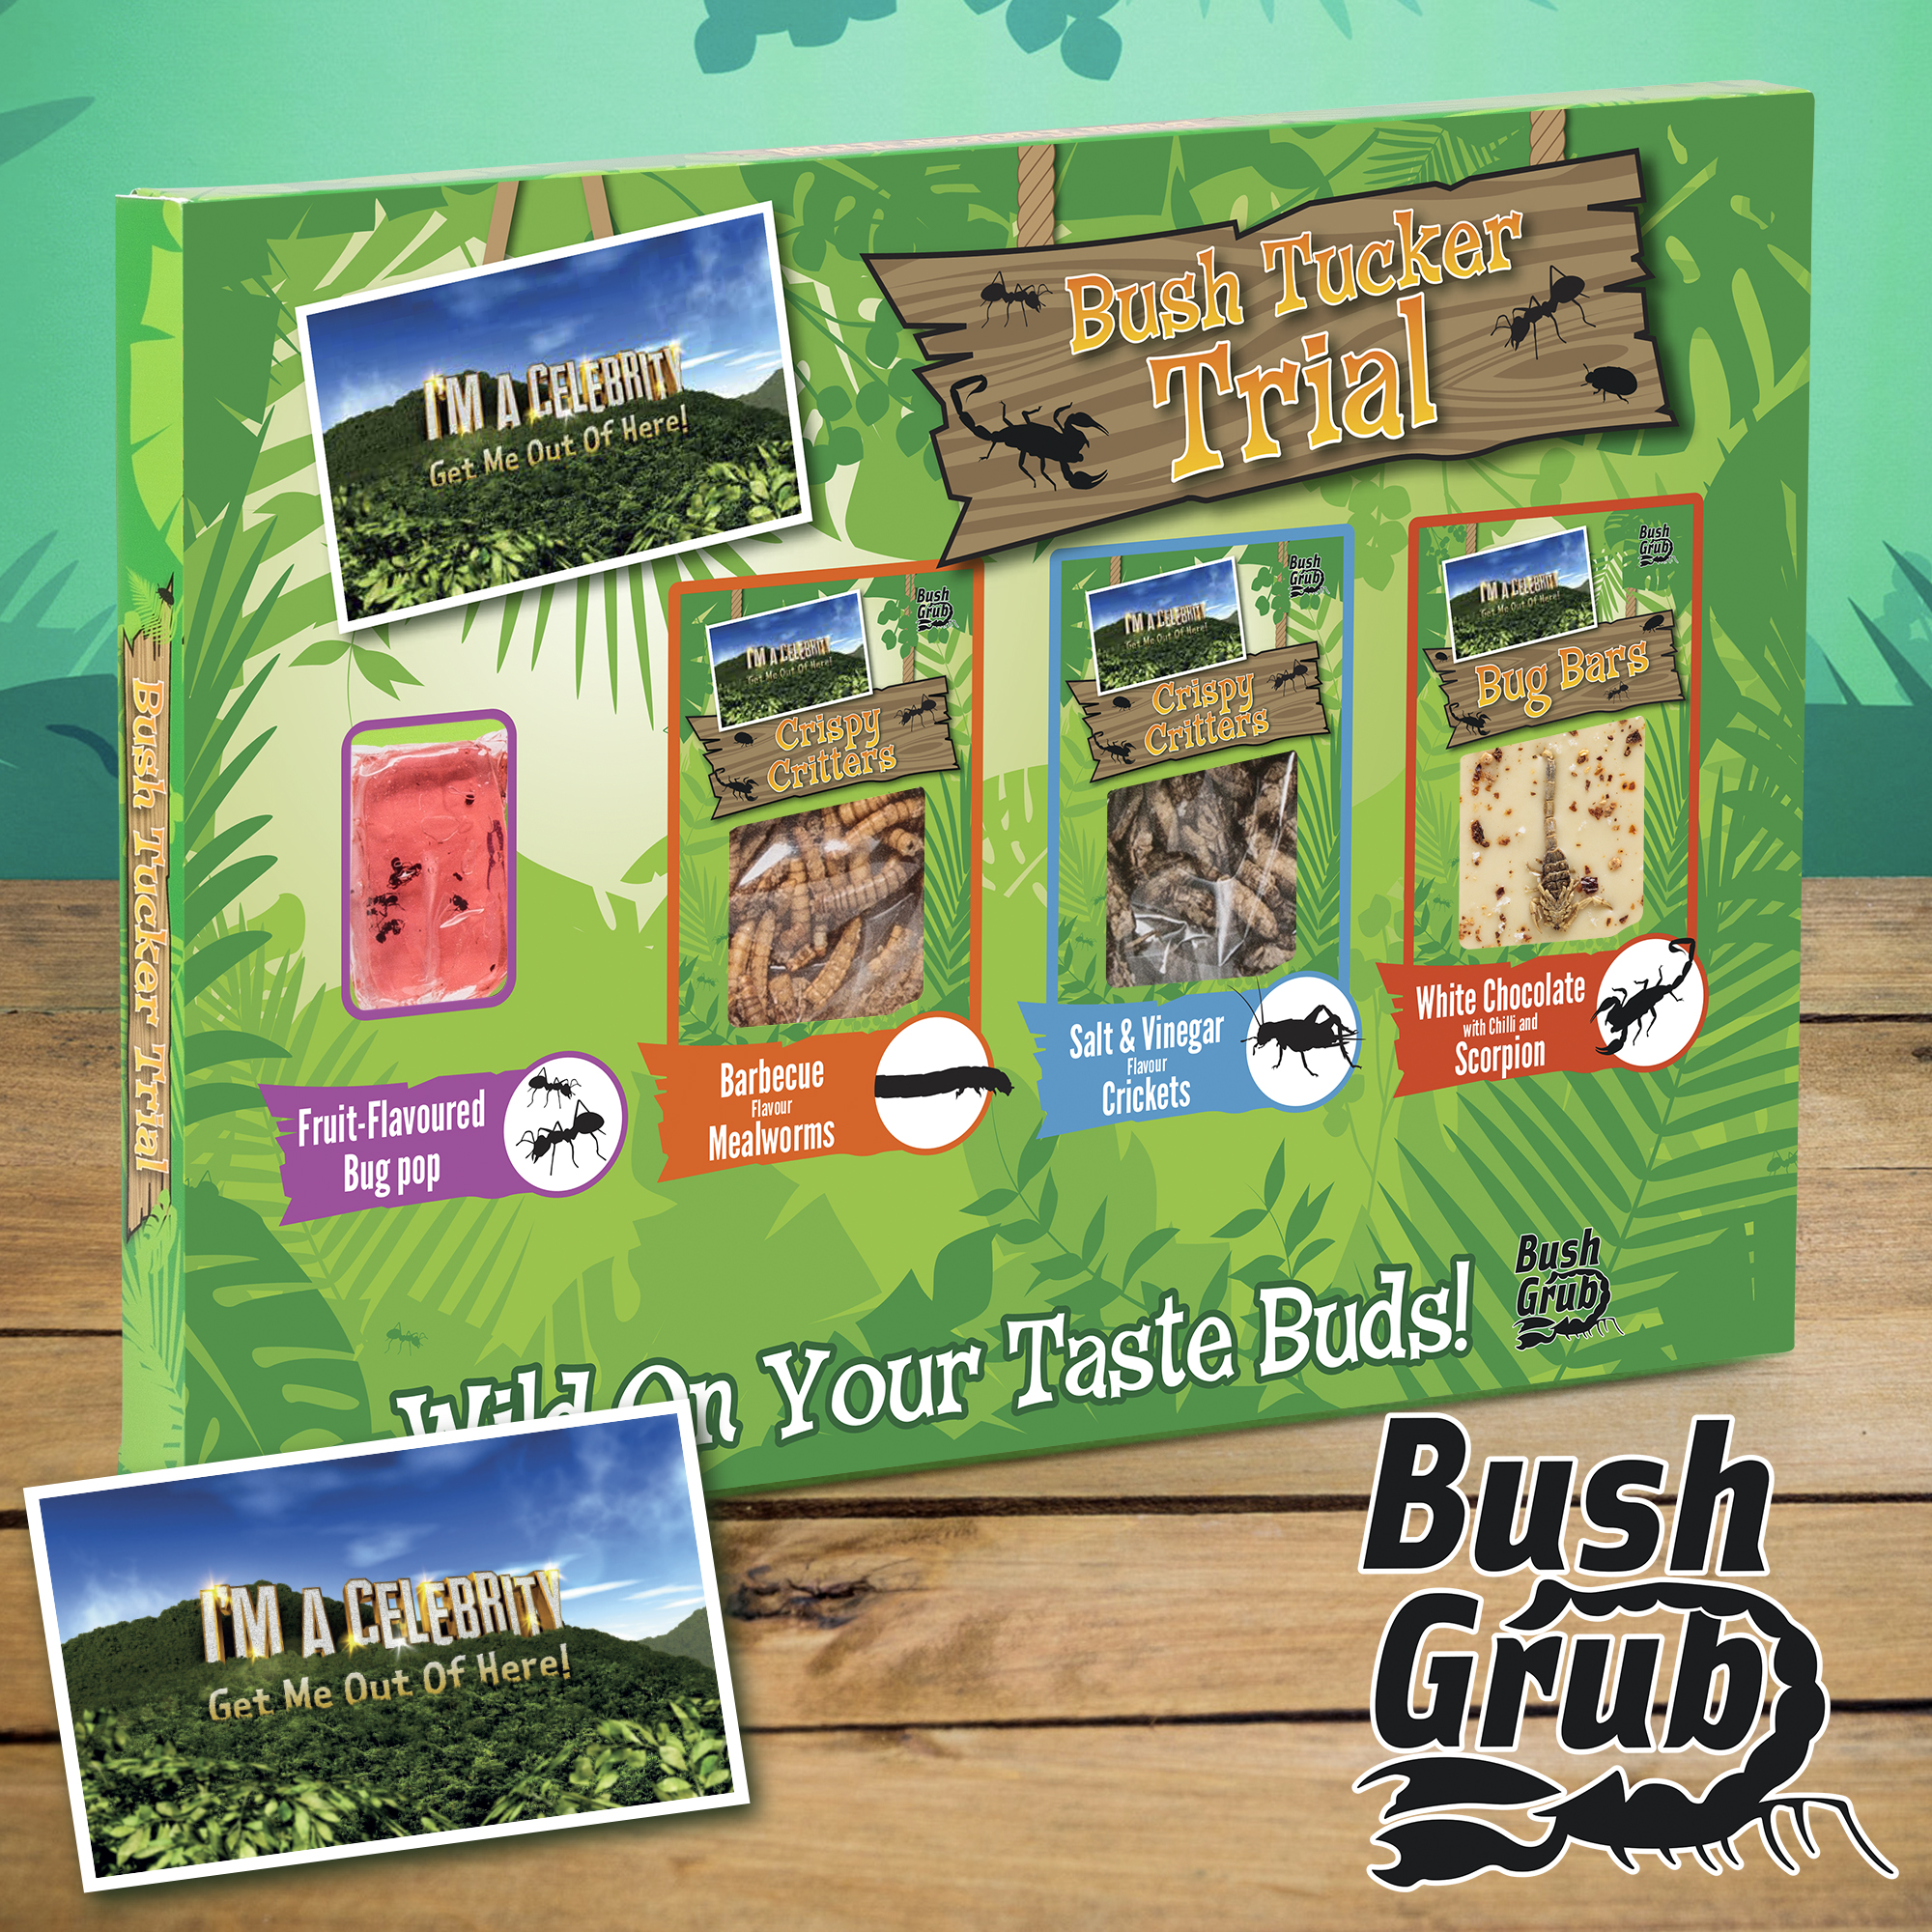 Bush Grub Bush Tucker Trial (76g)-0